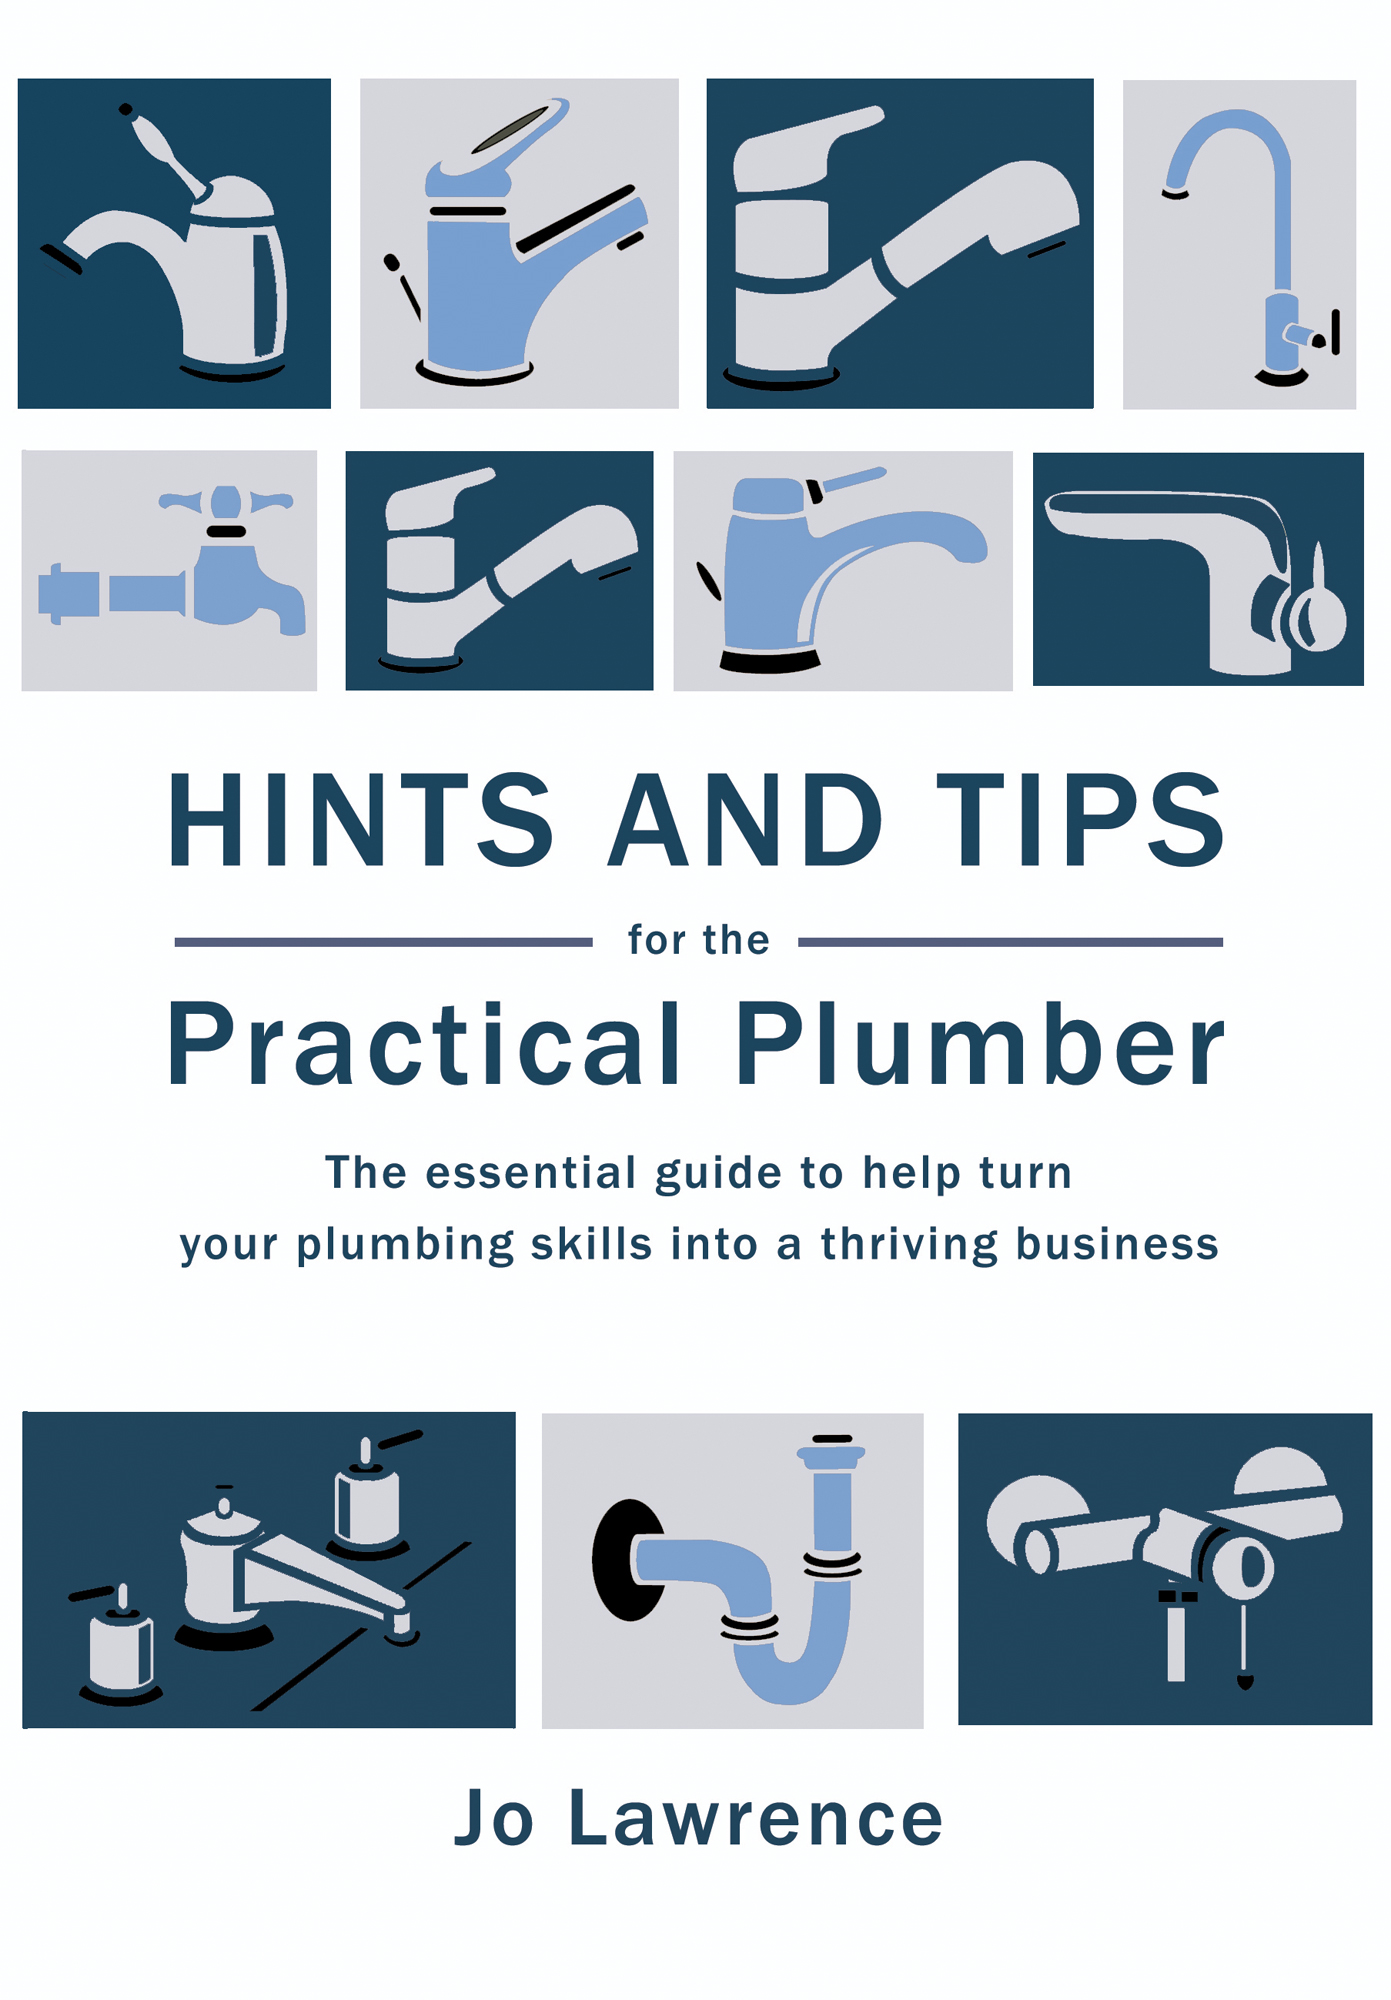 Hints and Tips for the Practical Plumber